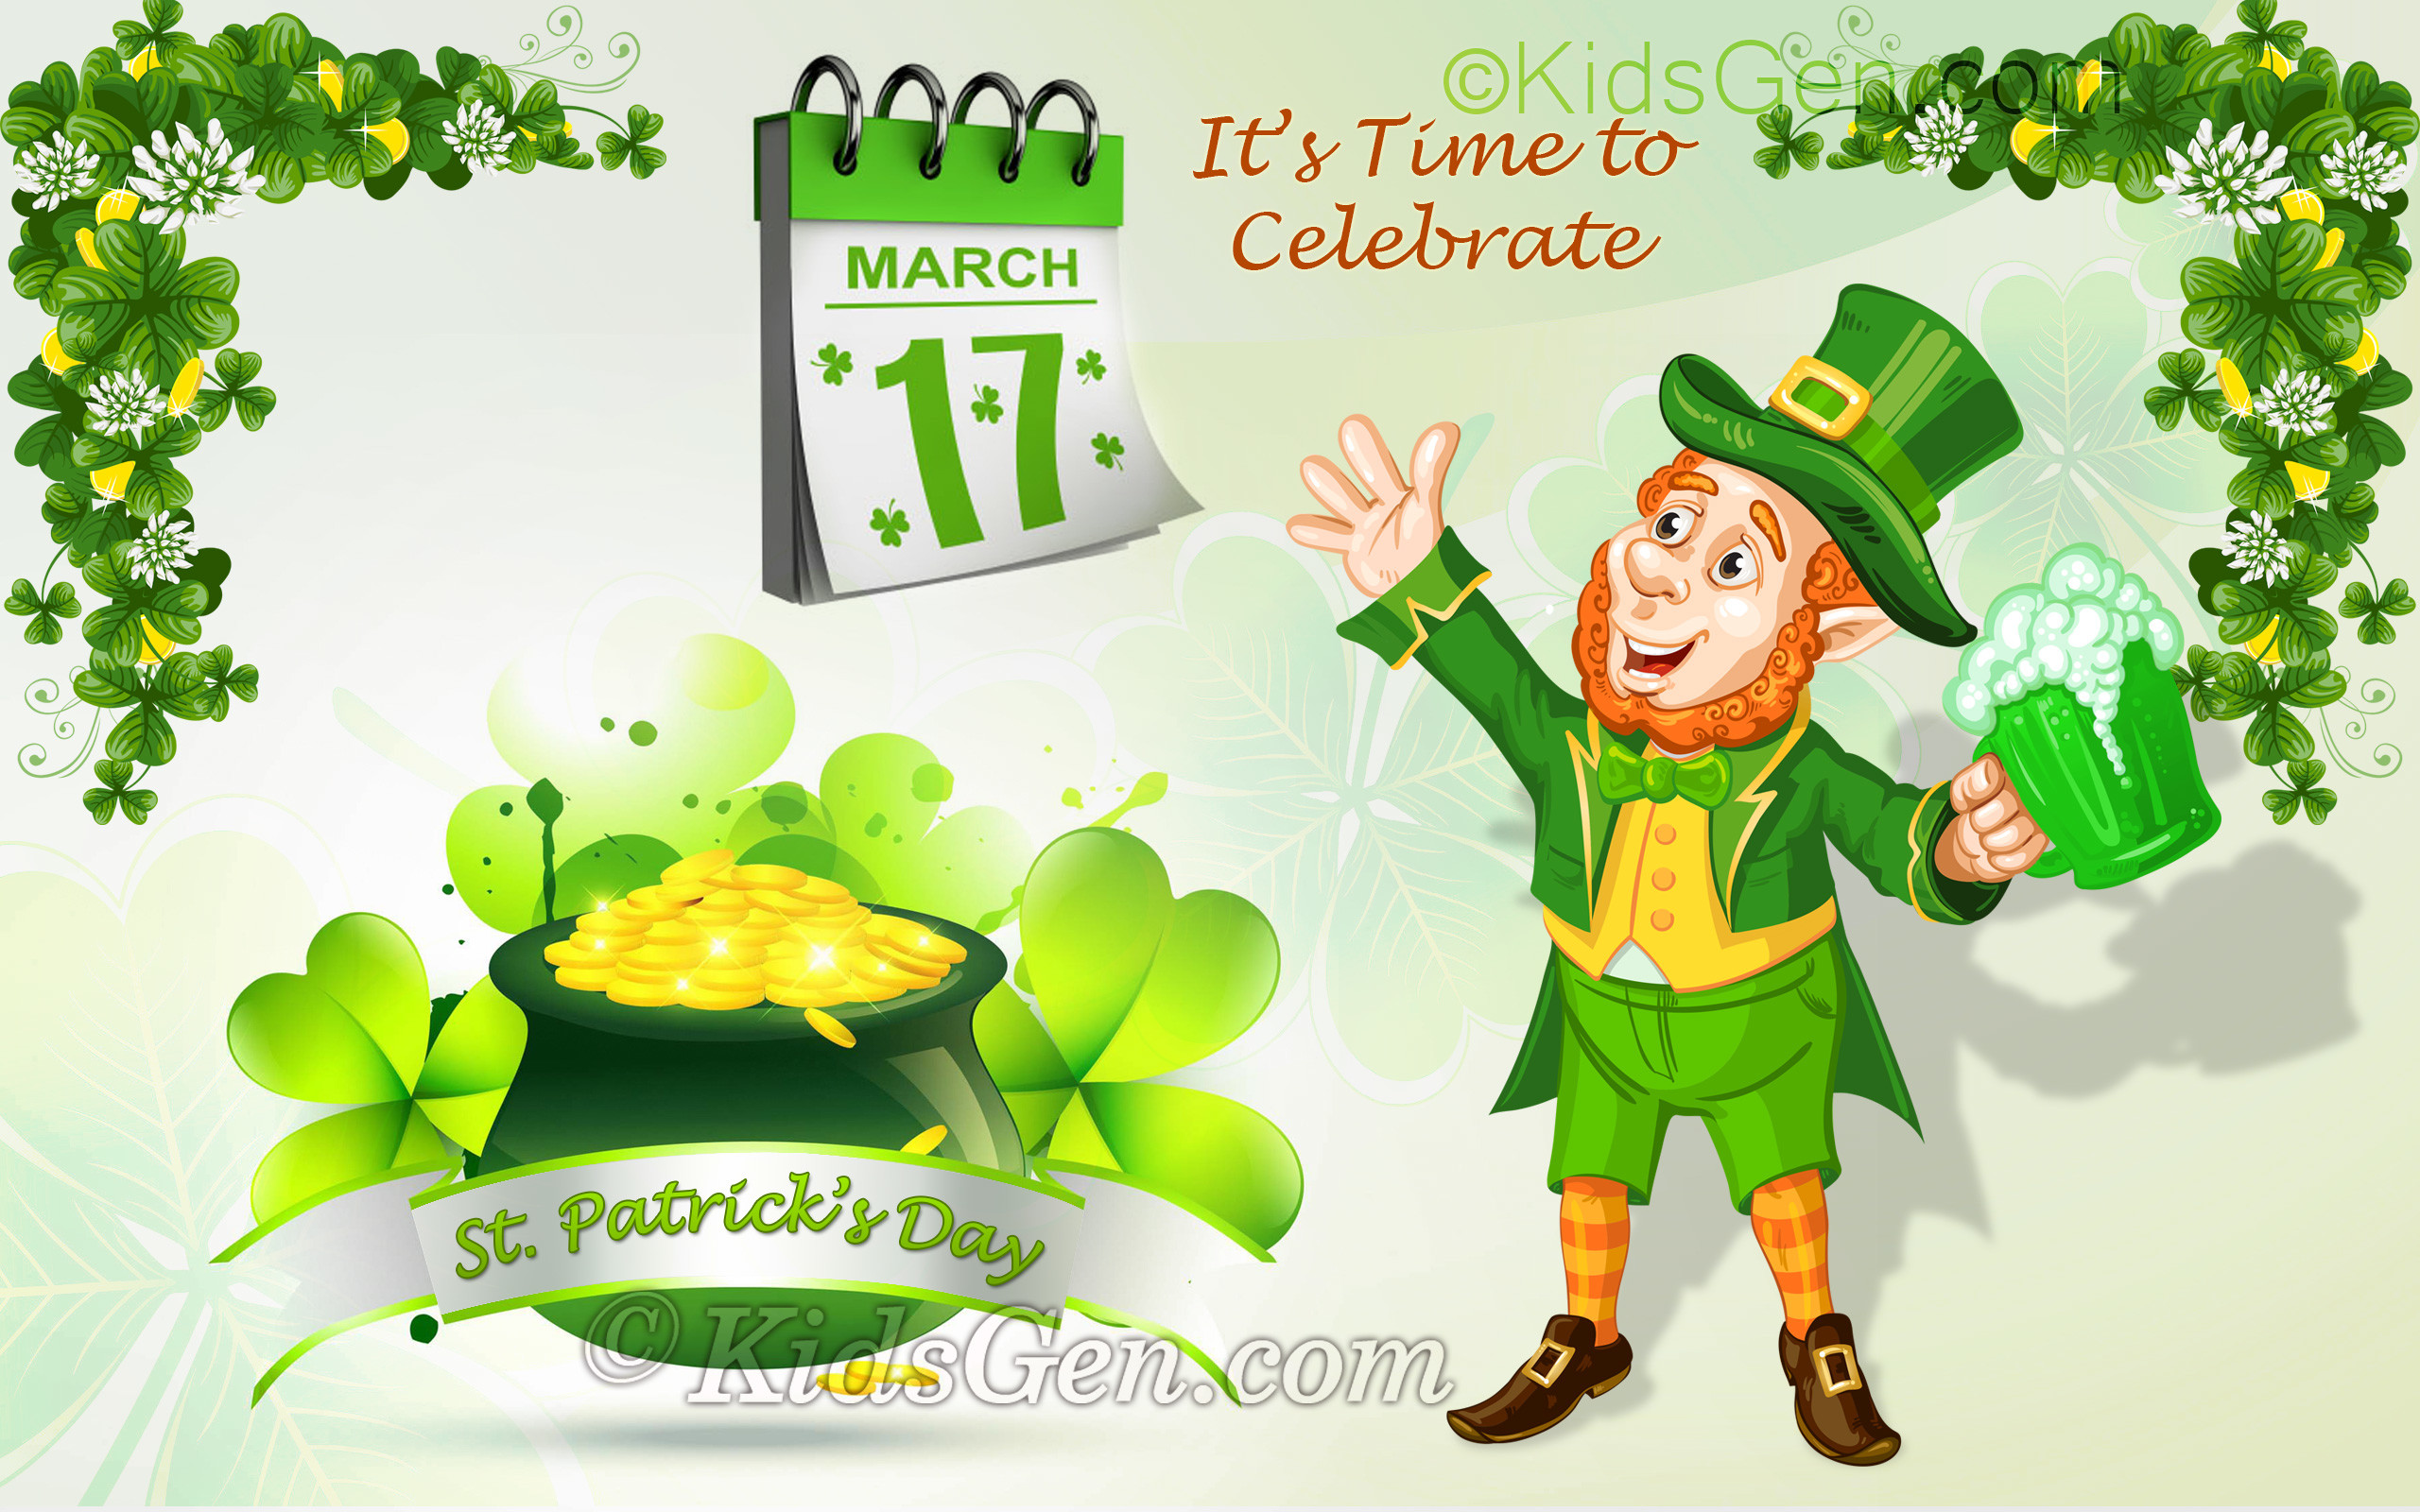 2560x1600 St. Patrick's Day Wallpaper for kids